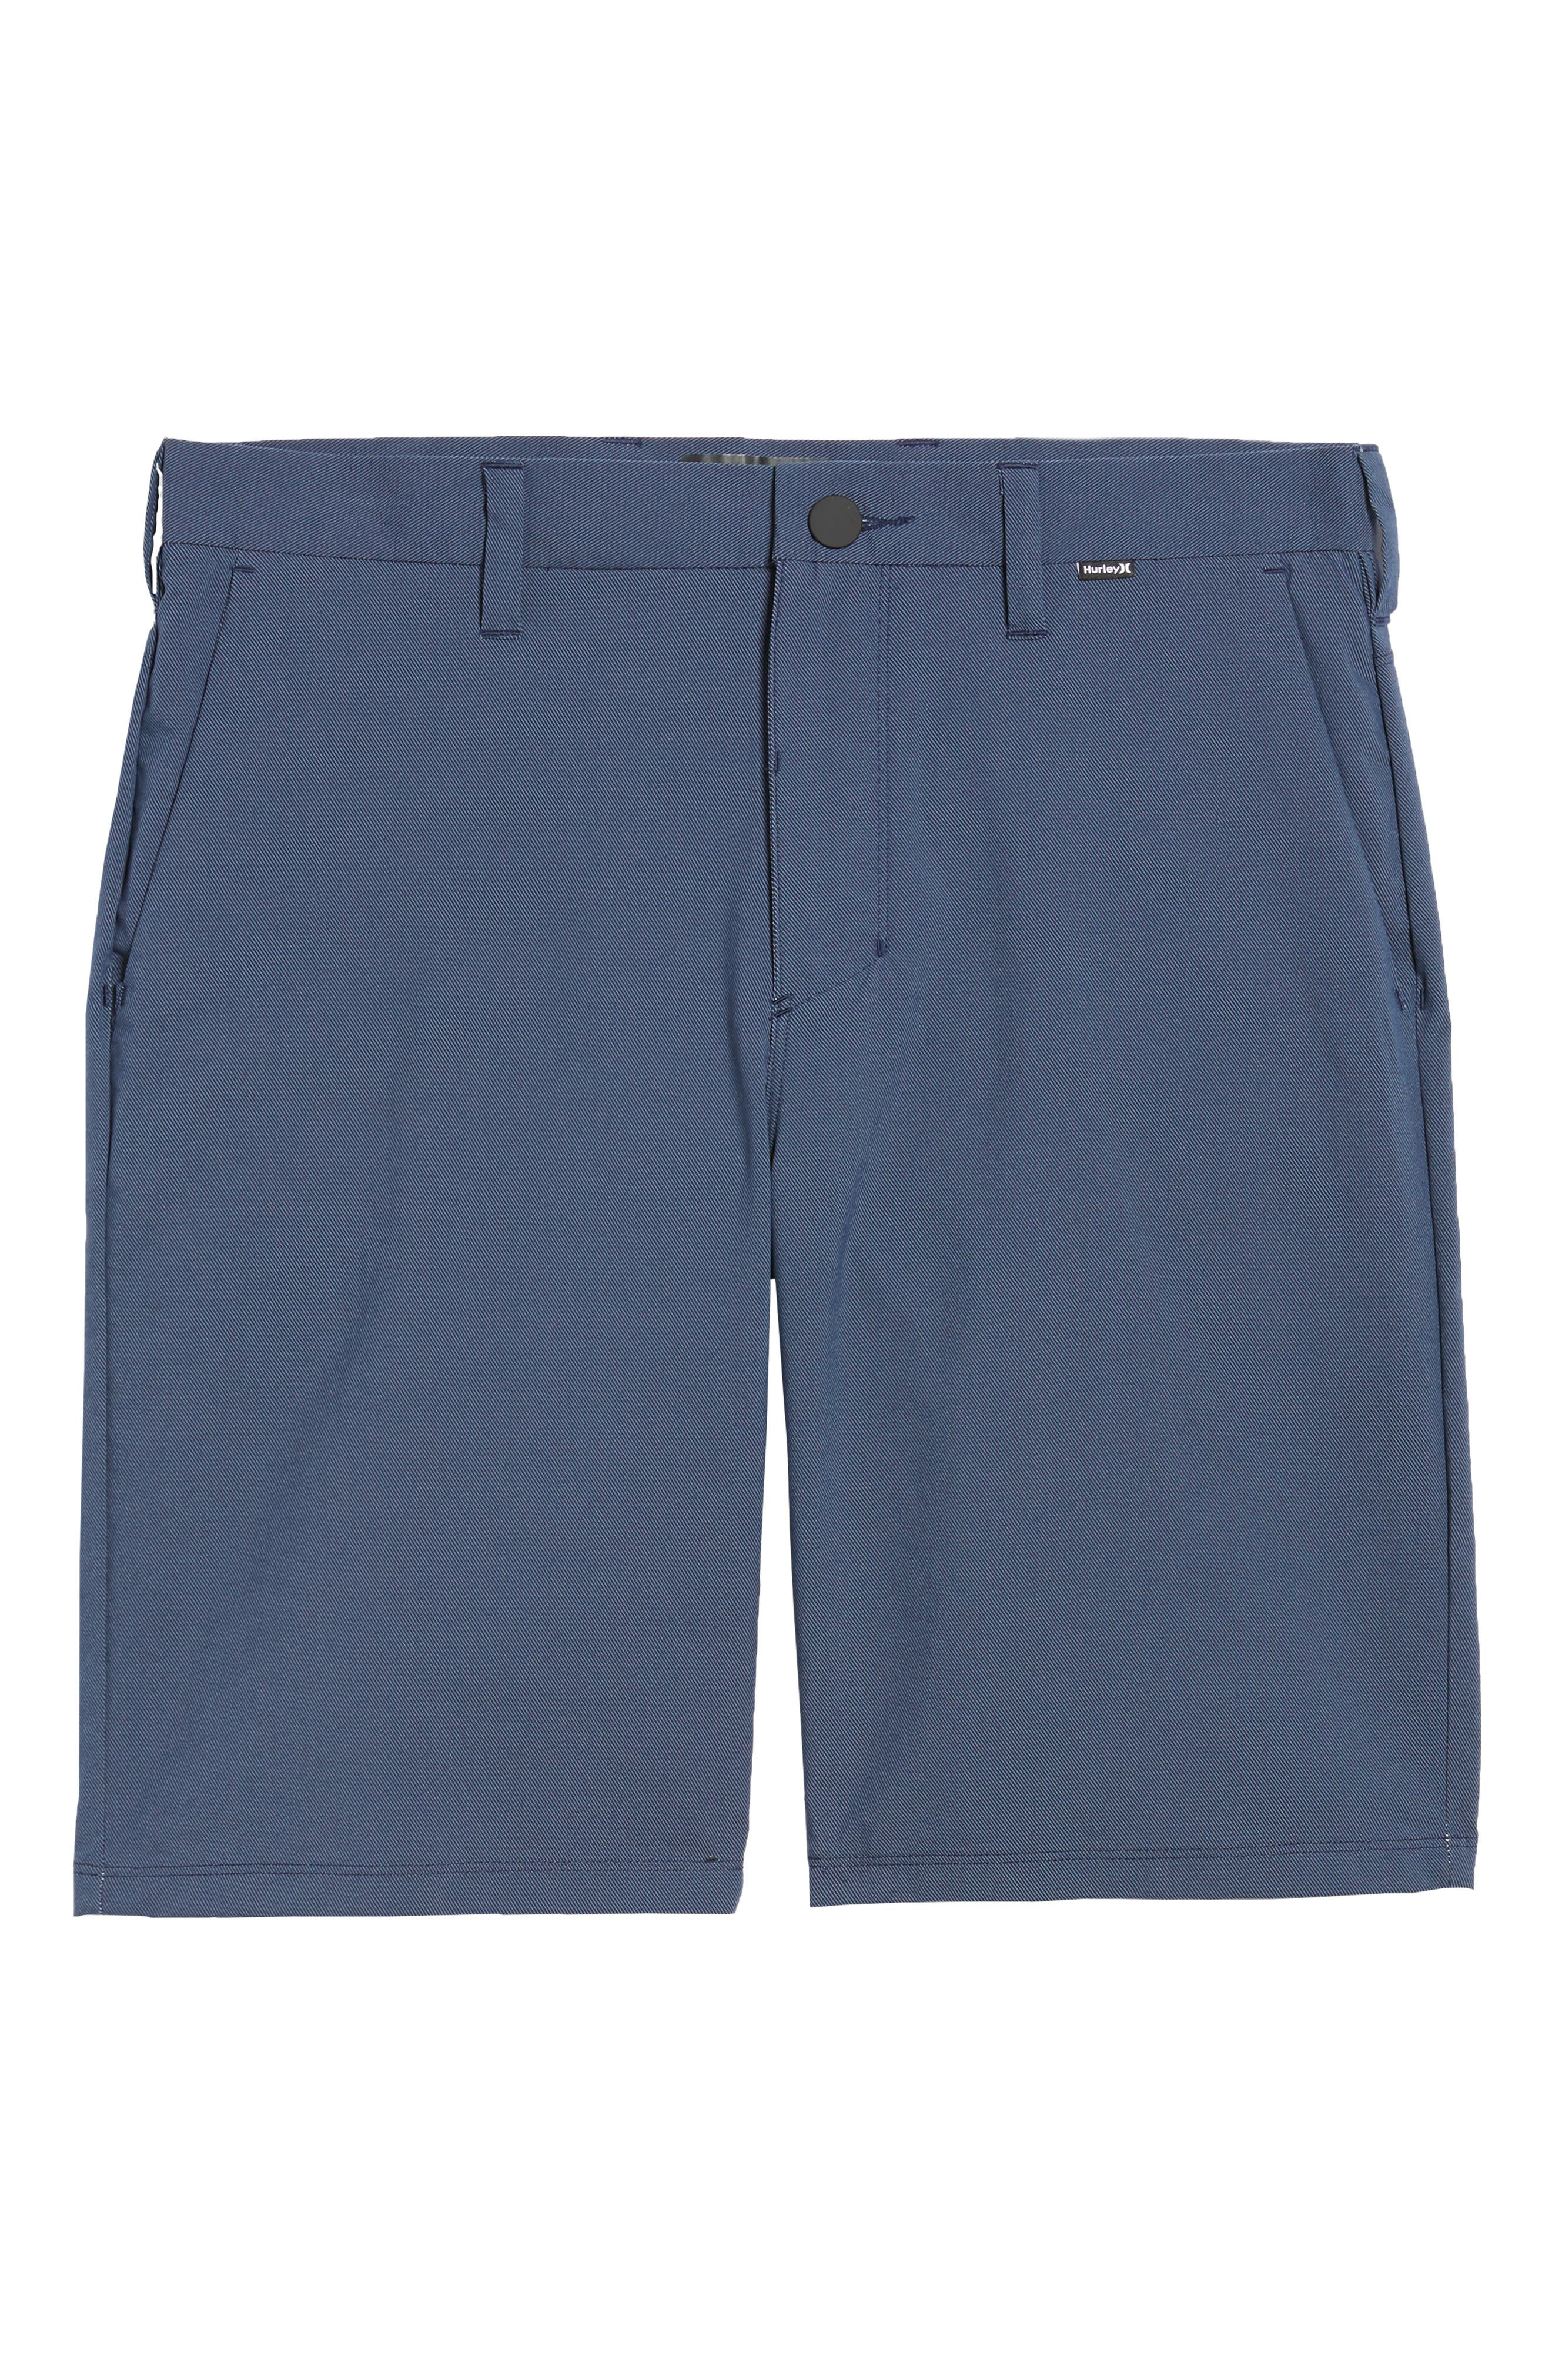 'Dry Out' Dri-FIT<sup>™</sup> Chino Shorts,                             Alternate thumbnail 217, color,